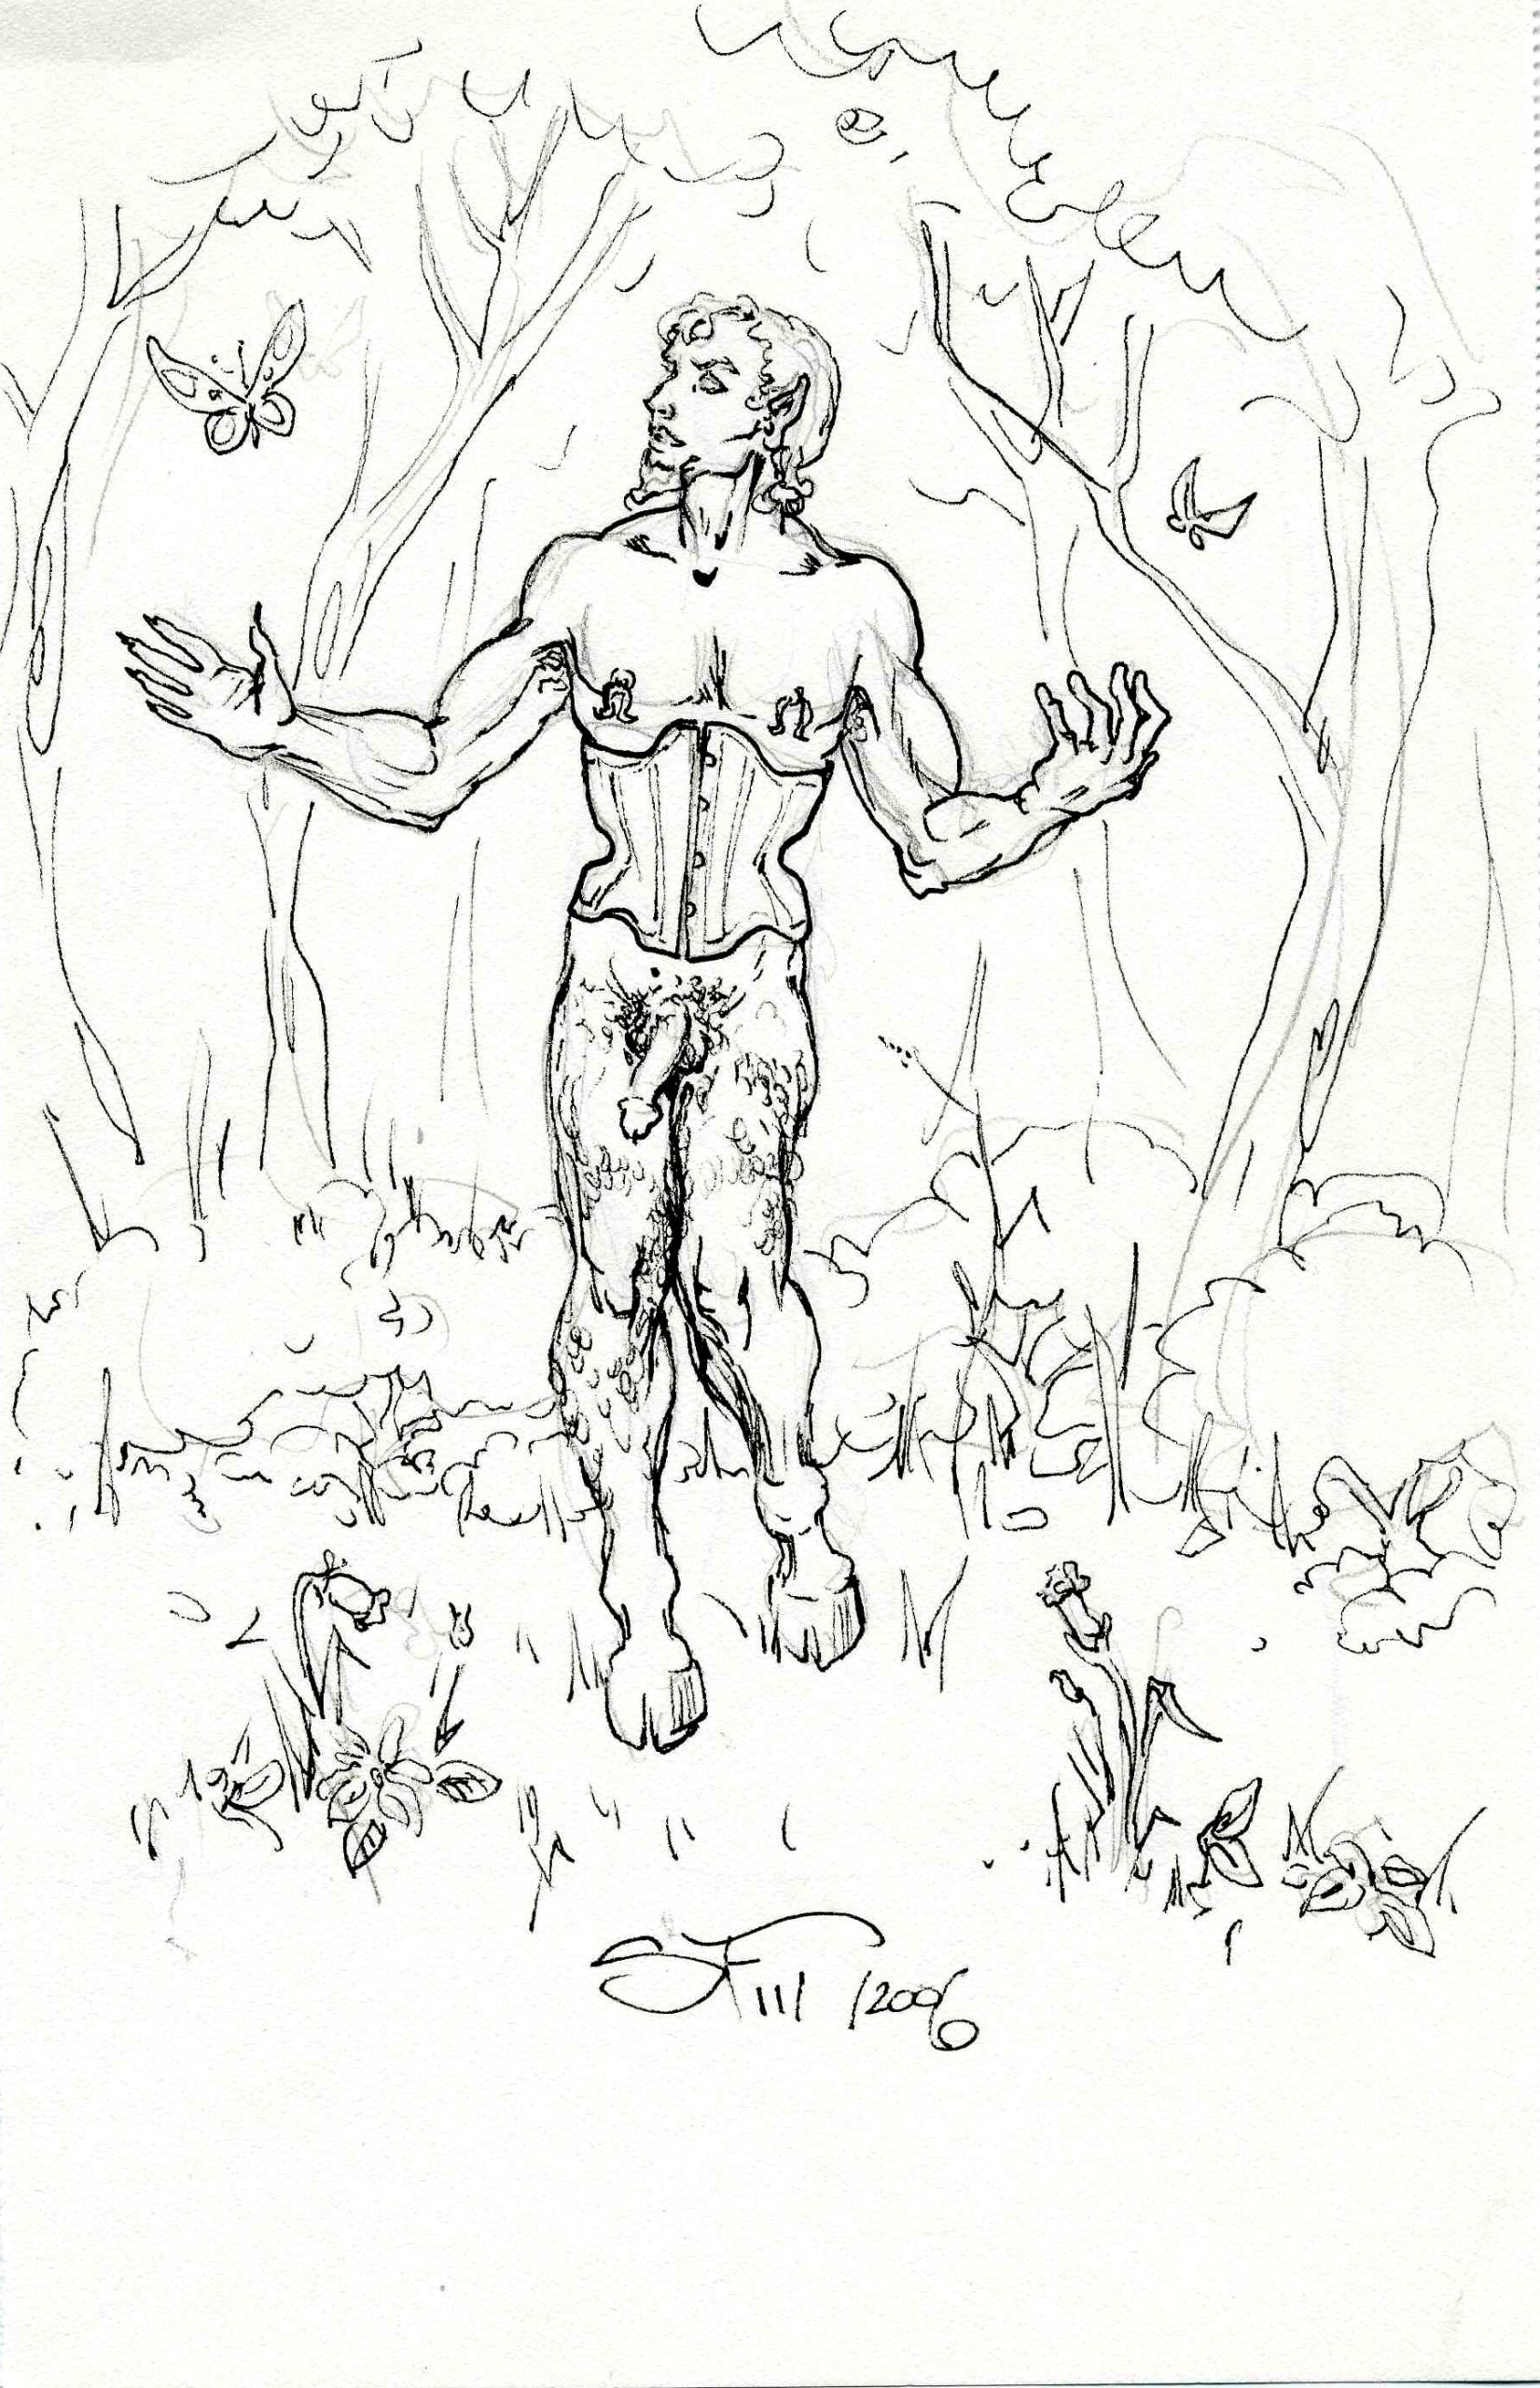 Naughty Faun with Butterfly 6x8 11 7 2006 by Suzanne Forbes